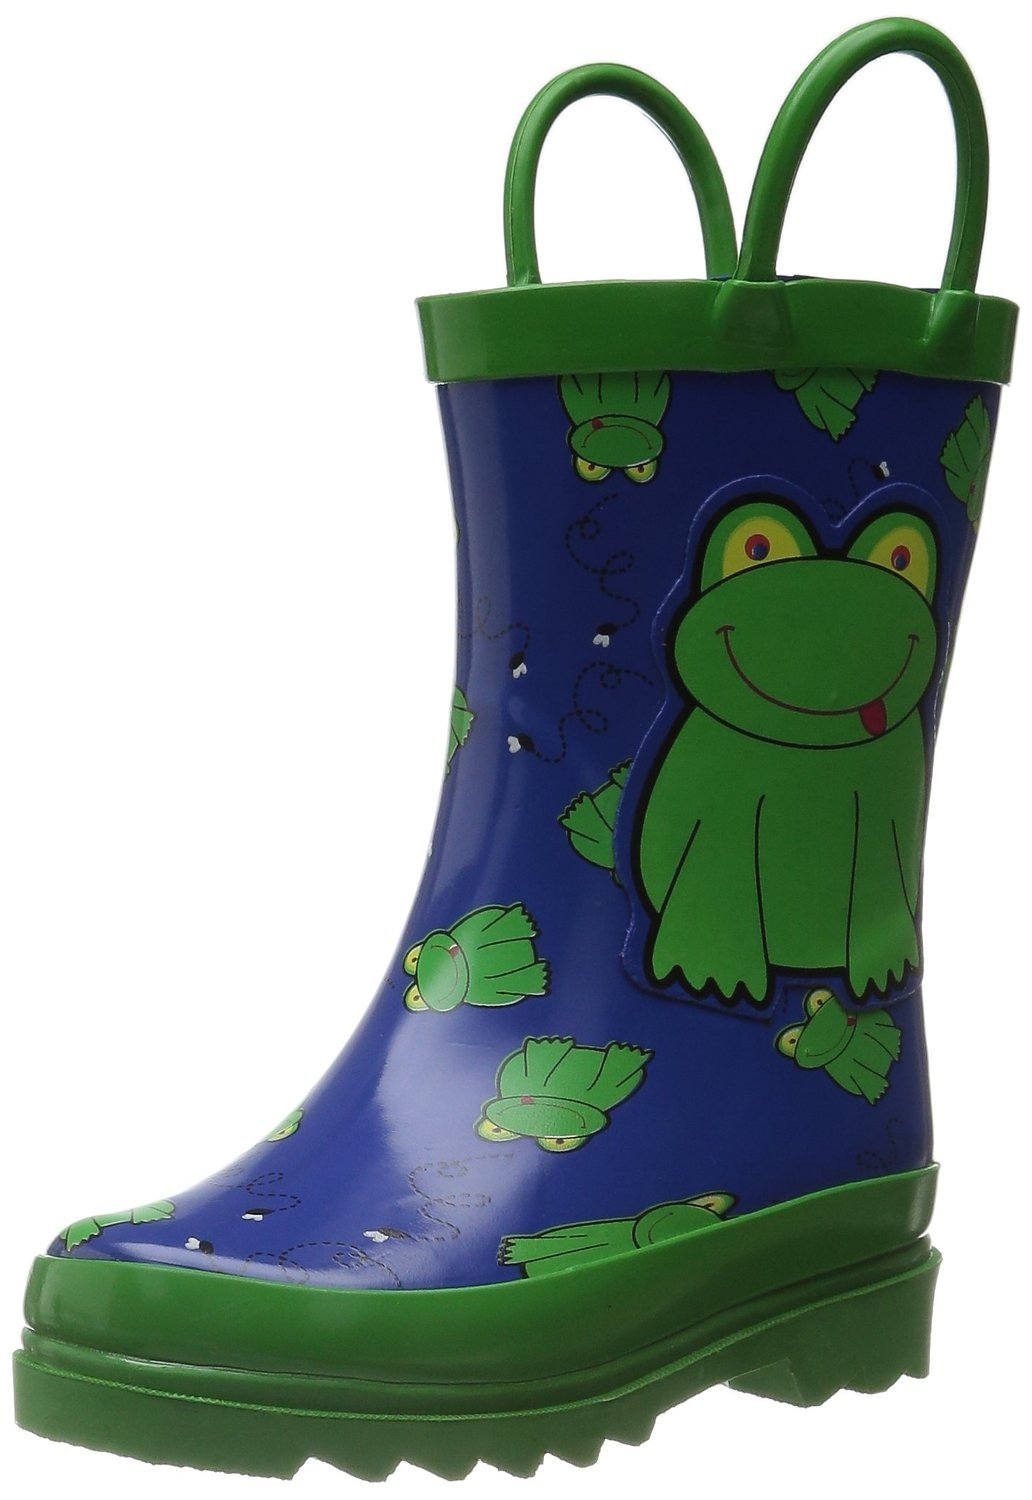 Little Boy's Green Frog Rain Boots Sizes Toddler/Little kids (11 M US Little Kid) by AccessoWear